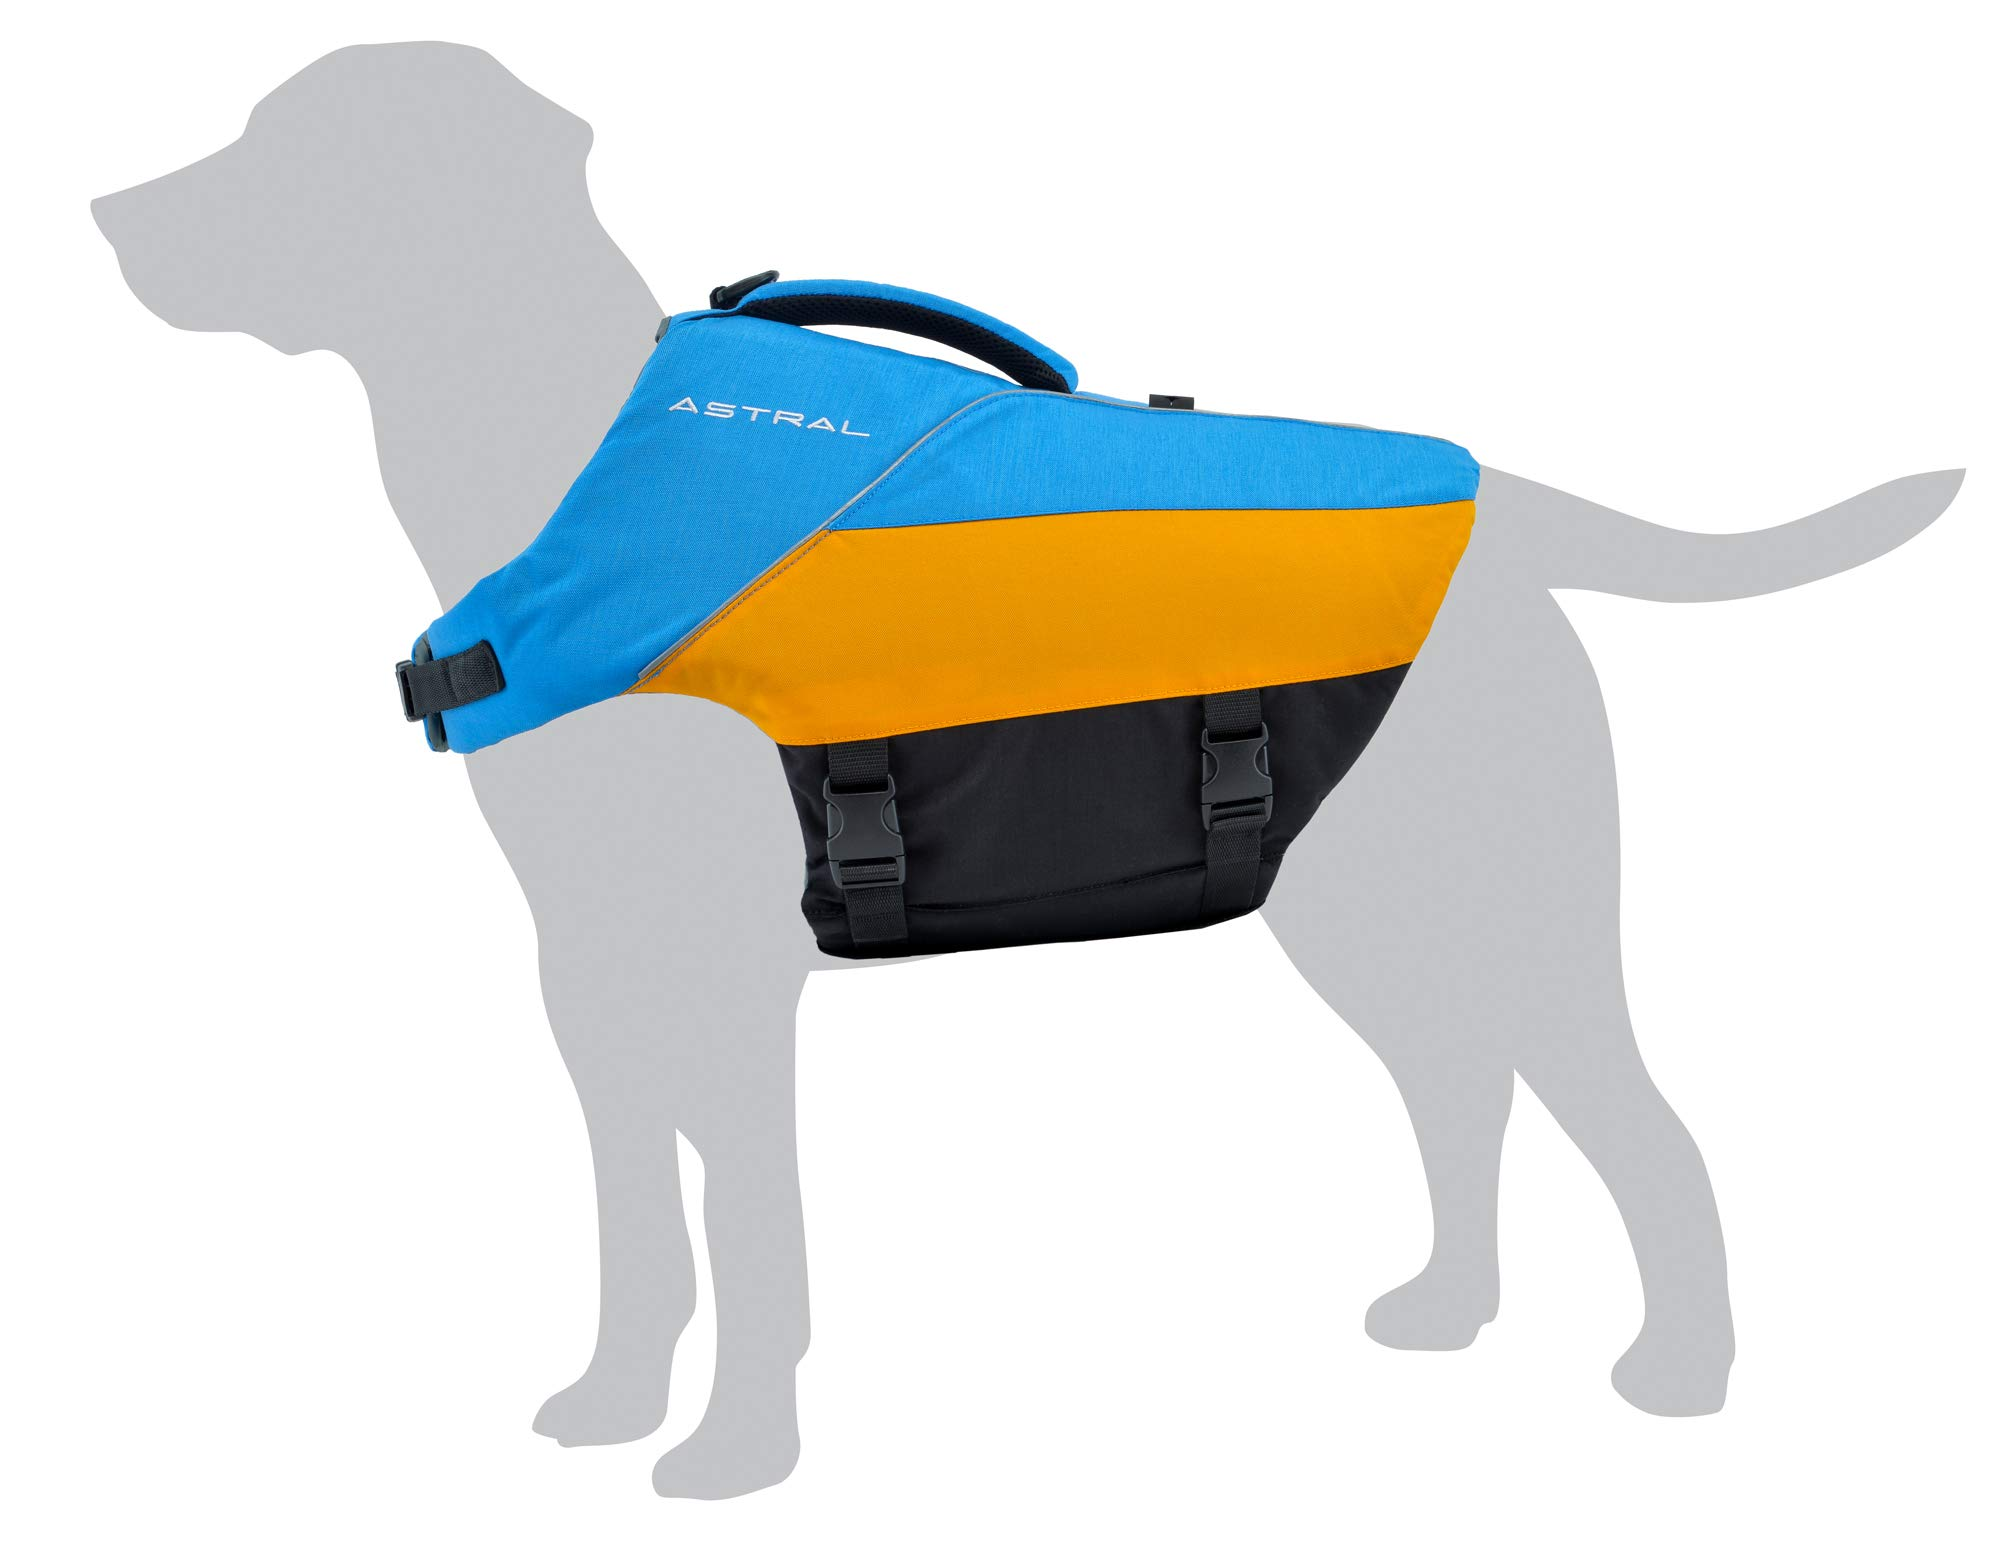 Astral BirdDog Dog Life Jacket PFD for Swimming and Water Play, Ol' Blue, Large